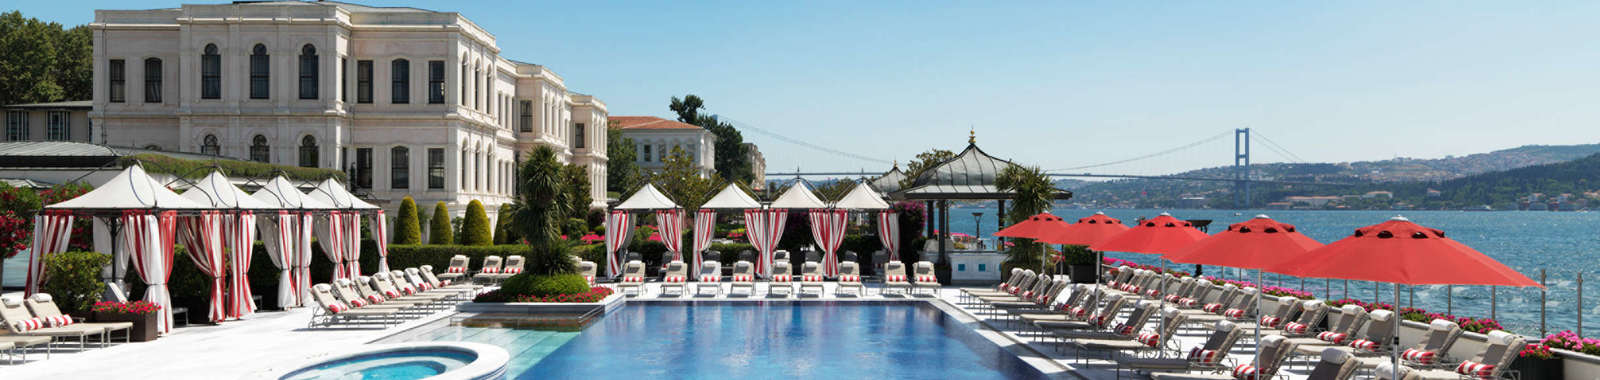 5 Four Seasons Bosphorus